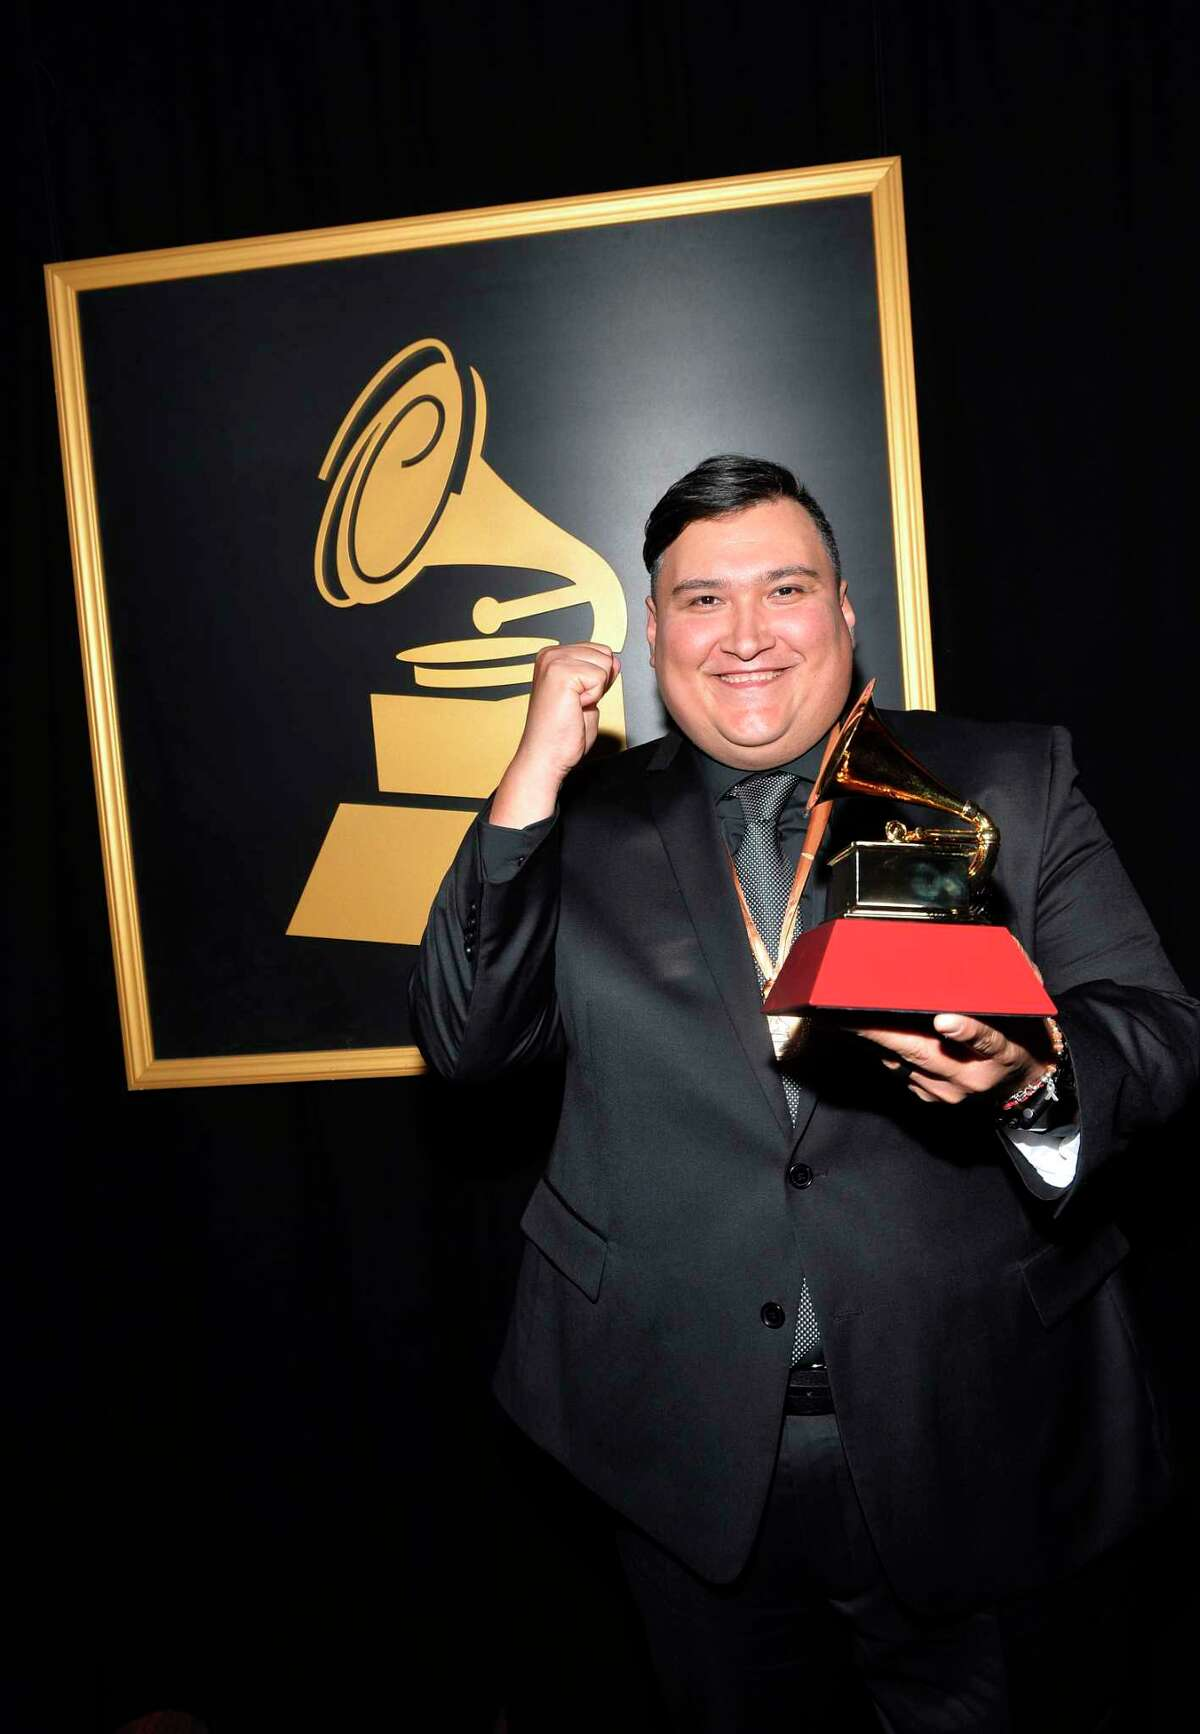 LAS VEGAS, NV - NOVEMBER 16: Juan Trevino poses with the award for Best Regional Song for Siempre Es Asi at the Premiere Ceremony during the 18th Annual Latin Grammy Awards at the Mandalay Bay Convention Center on November 16, 2017 in Las Vegas, Nevada.